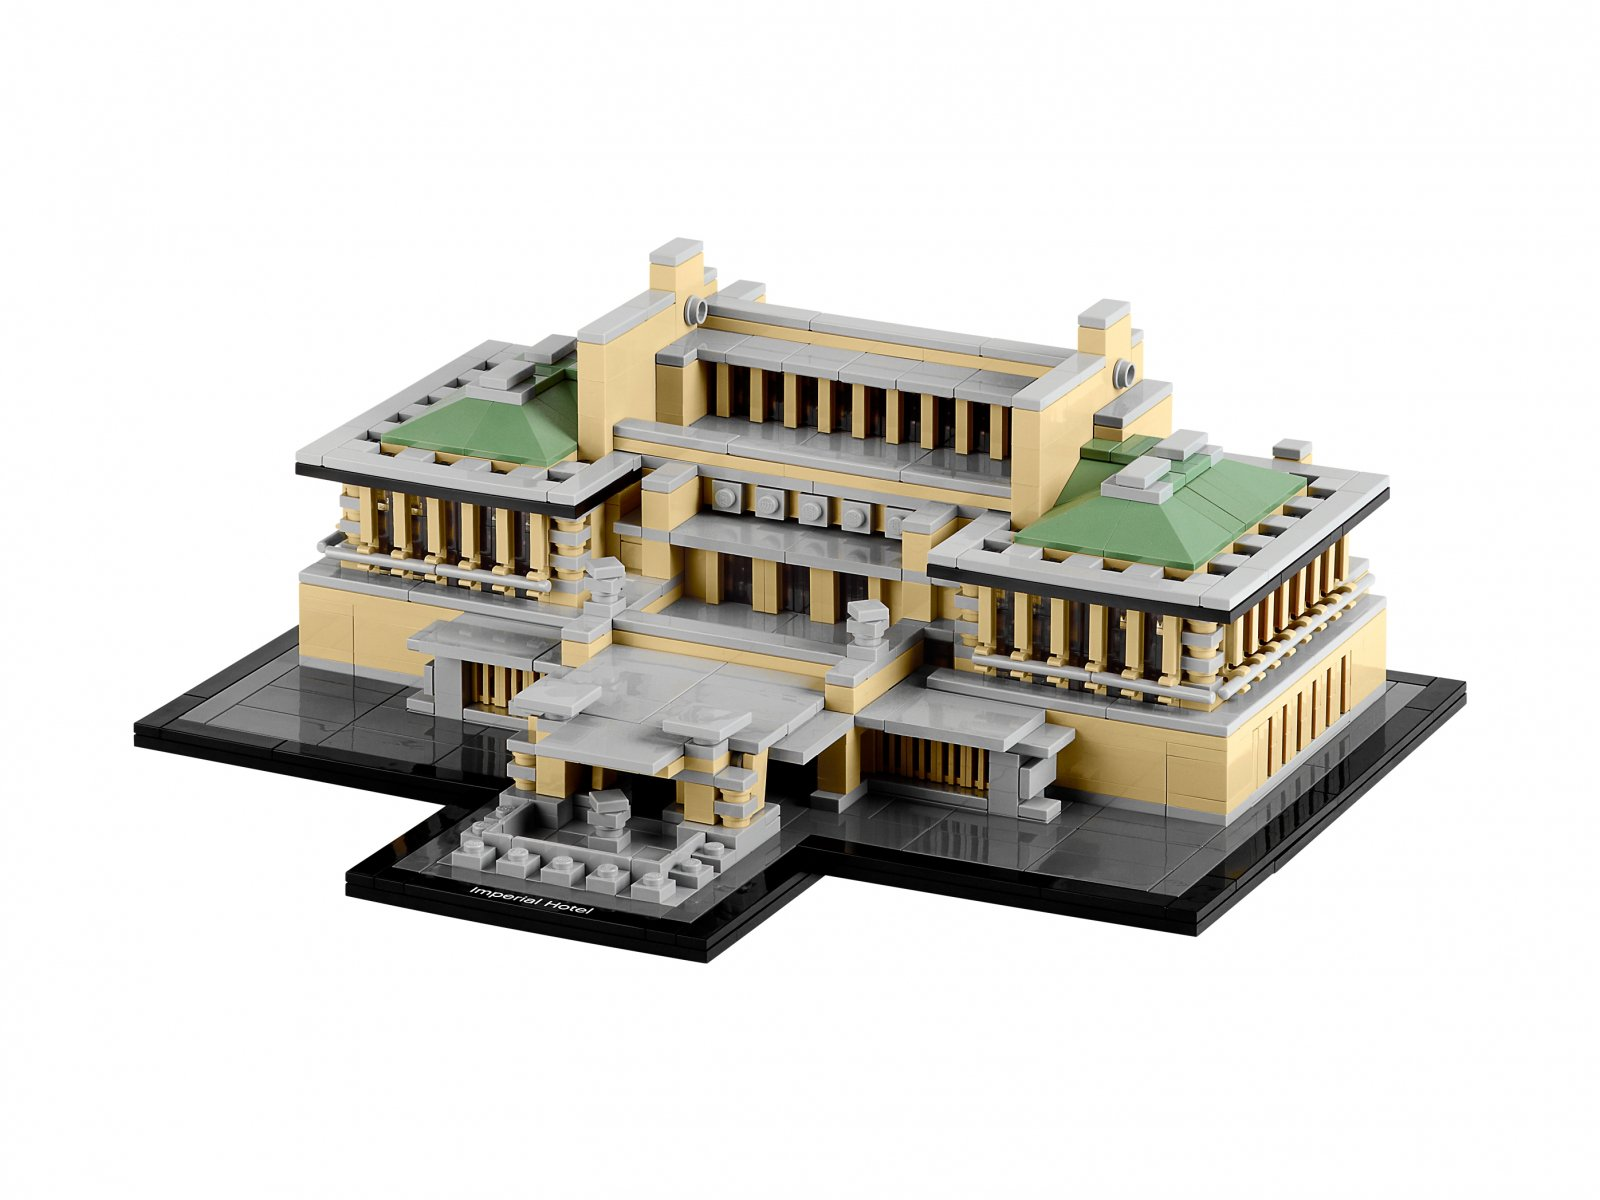 LEGO 21017 Architecture Hotel Imperial